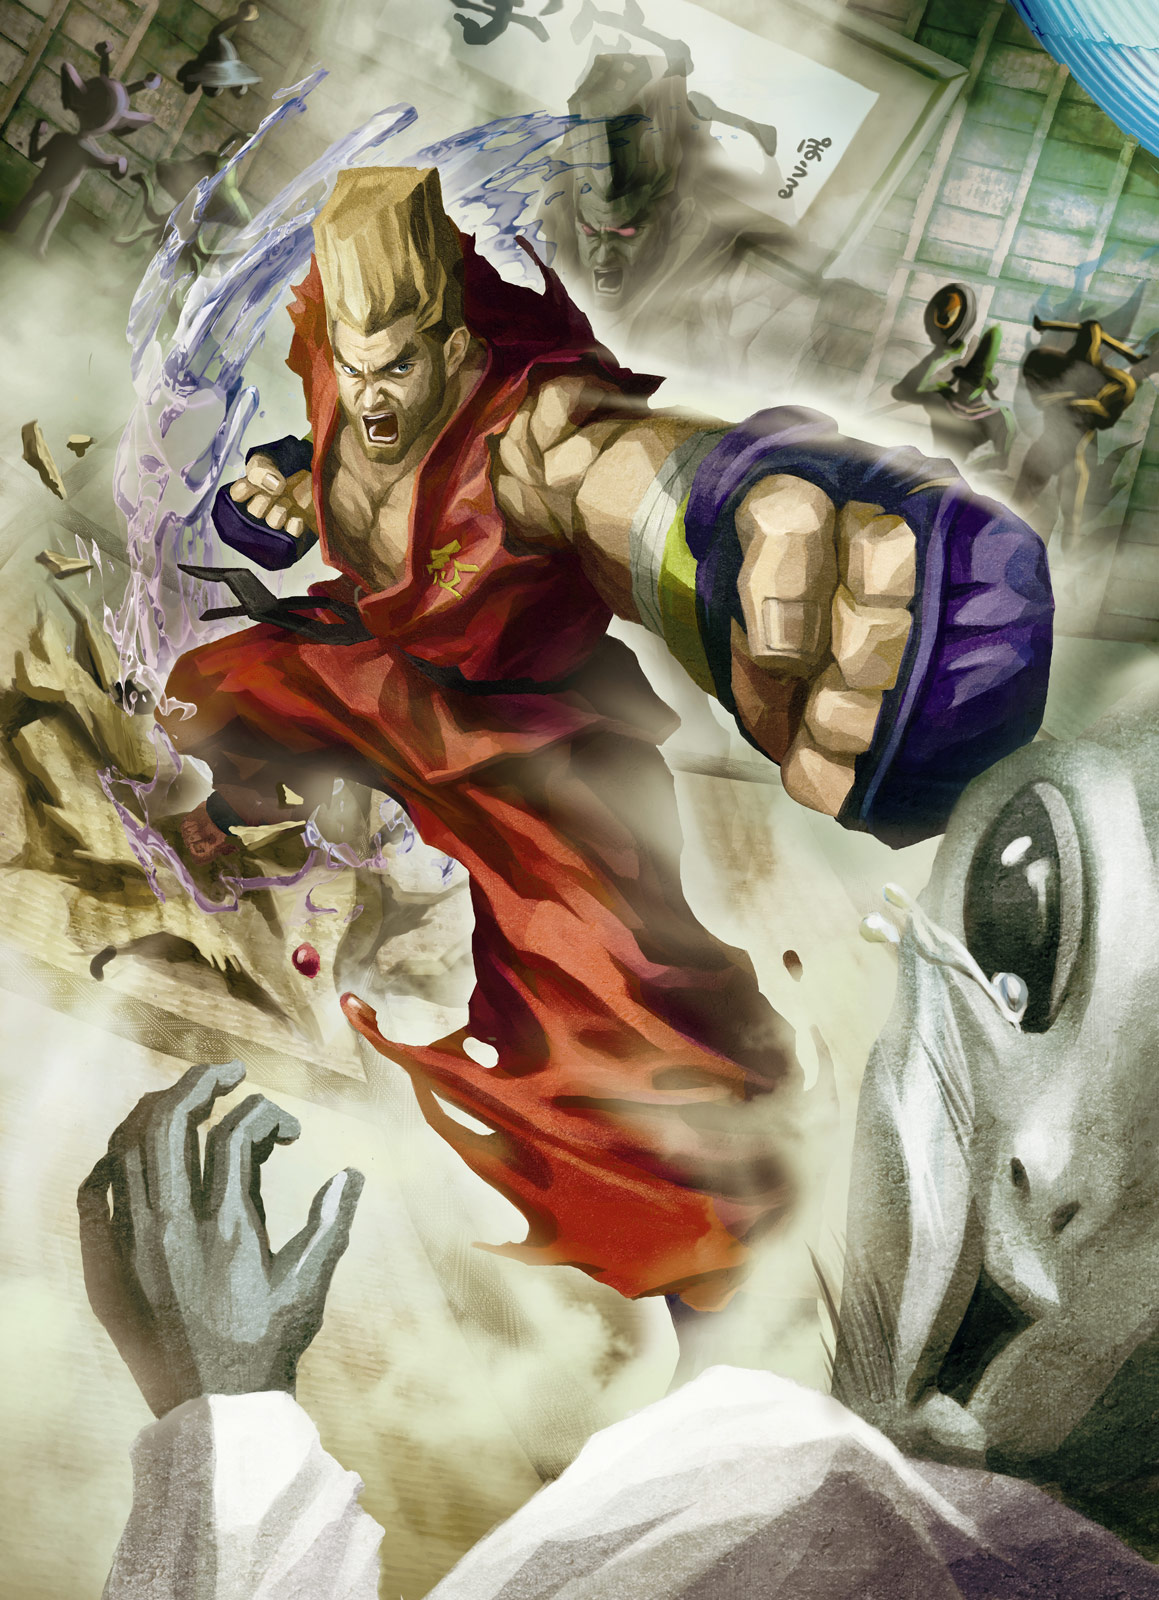 Street Fighter X Tekken artwork Balrog, Vega, Juri, Paul, Law & Xiaoyu #12